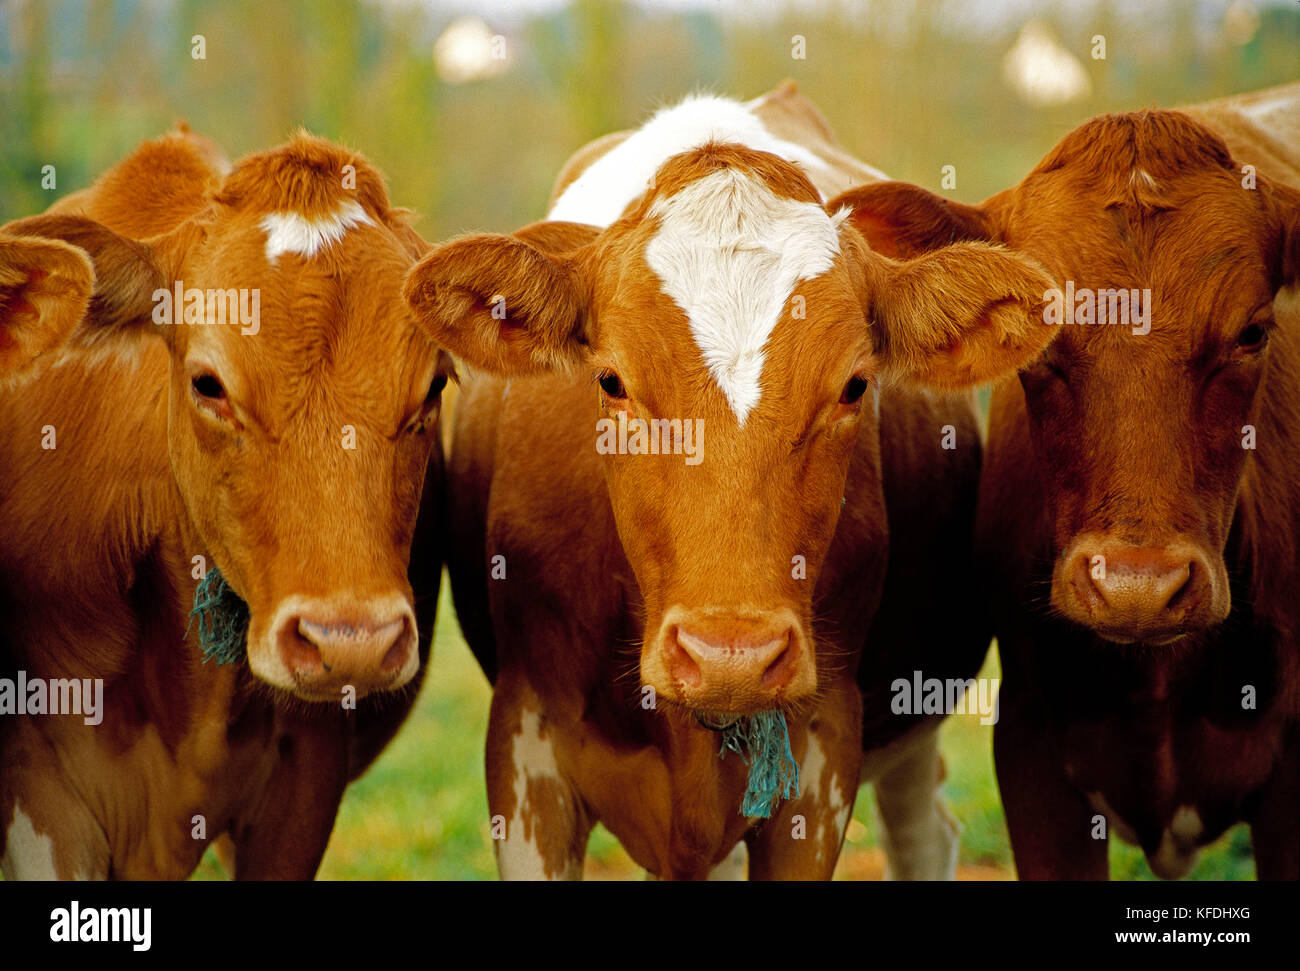 Agriculture. Cattle. Three Guernsey dairy cows close up. - Stock Image